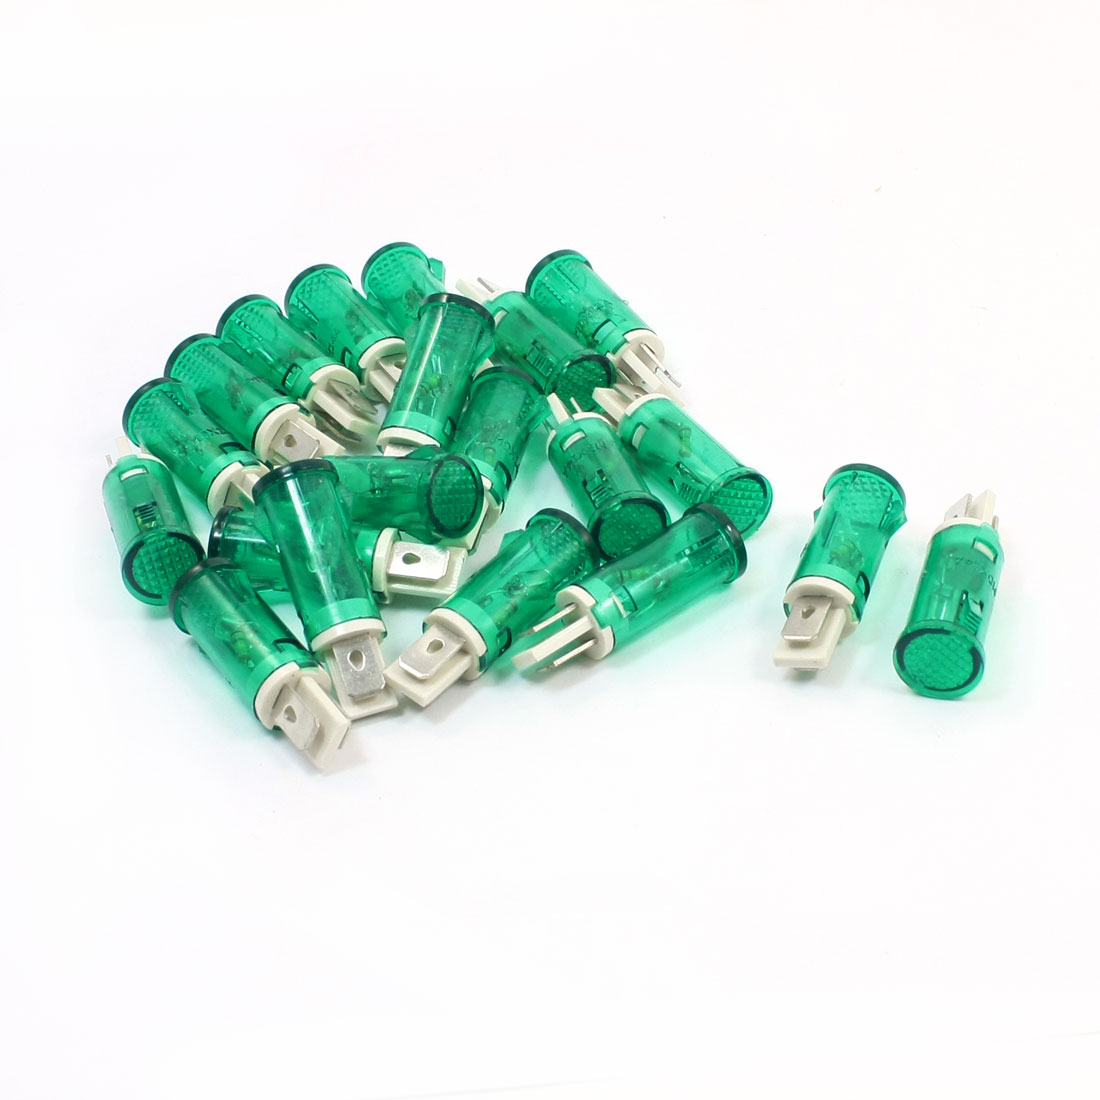 AC 220V 2 Terminal Neon Indicator Lamp Pilot Lights Green 20 Pcs